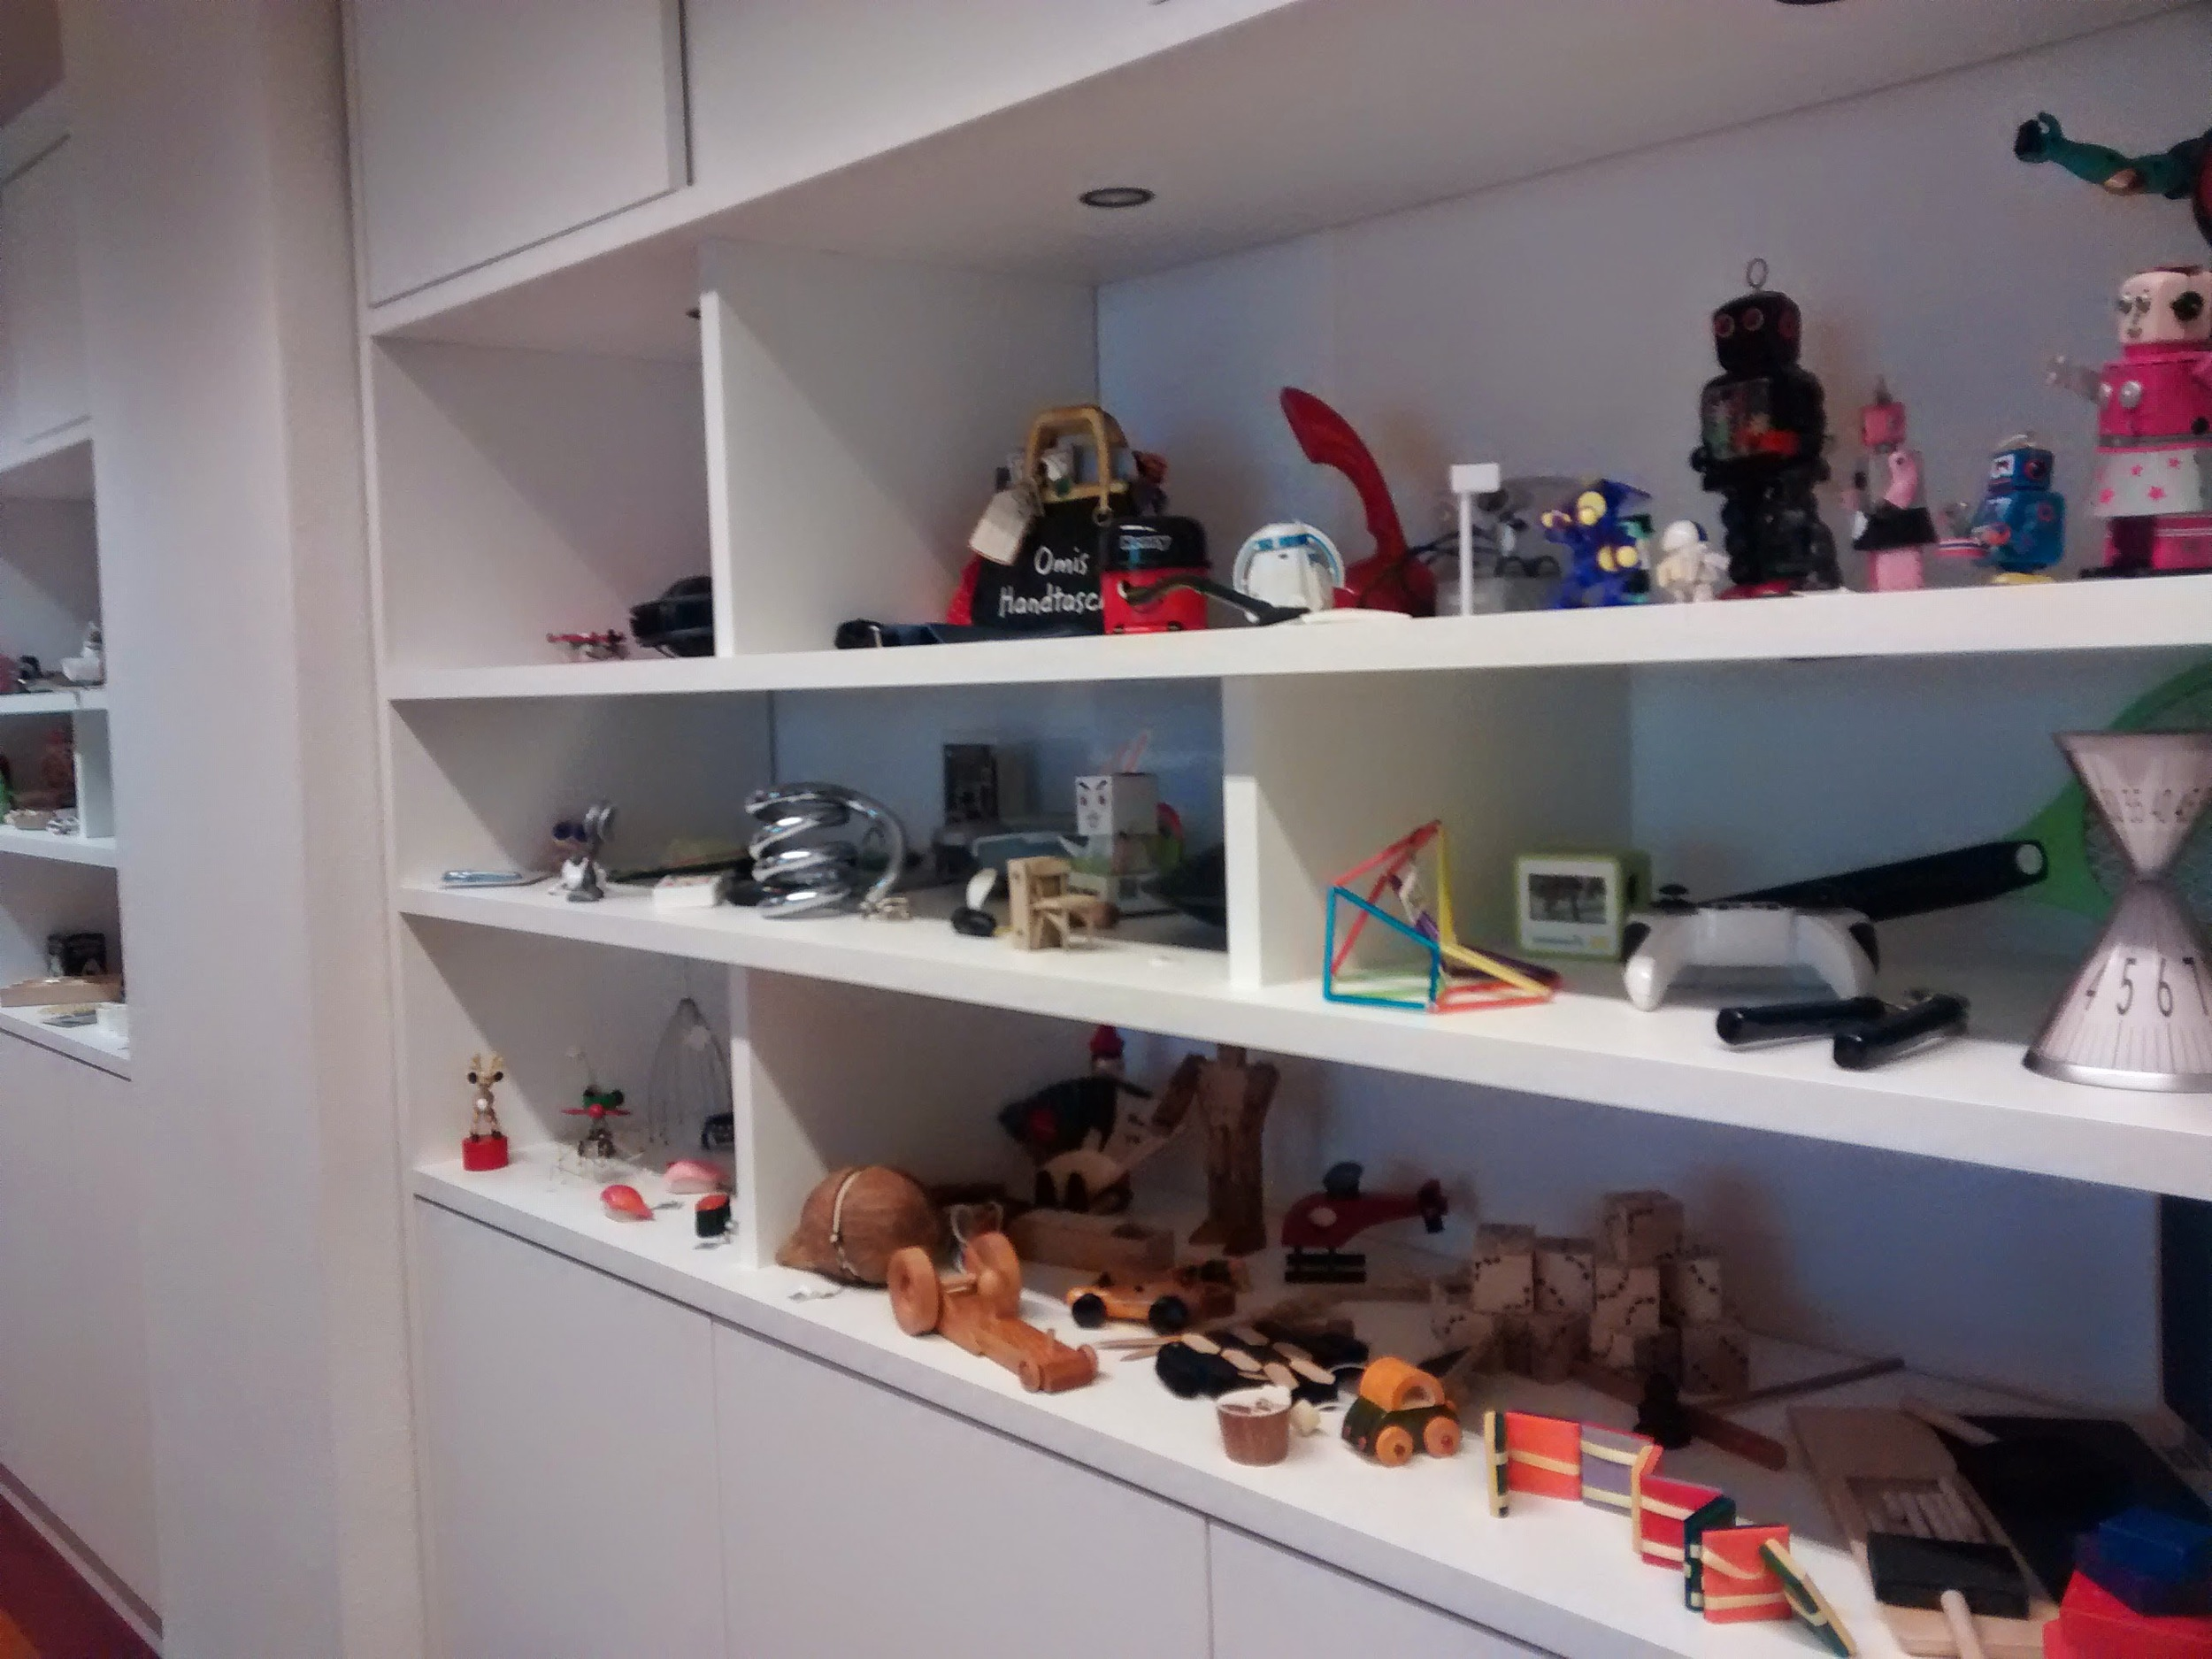 Toys and artifacts at the Creation Center. (Emi Kolawole)